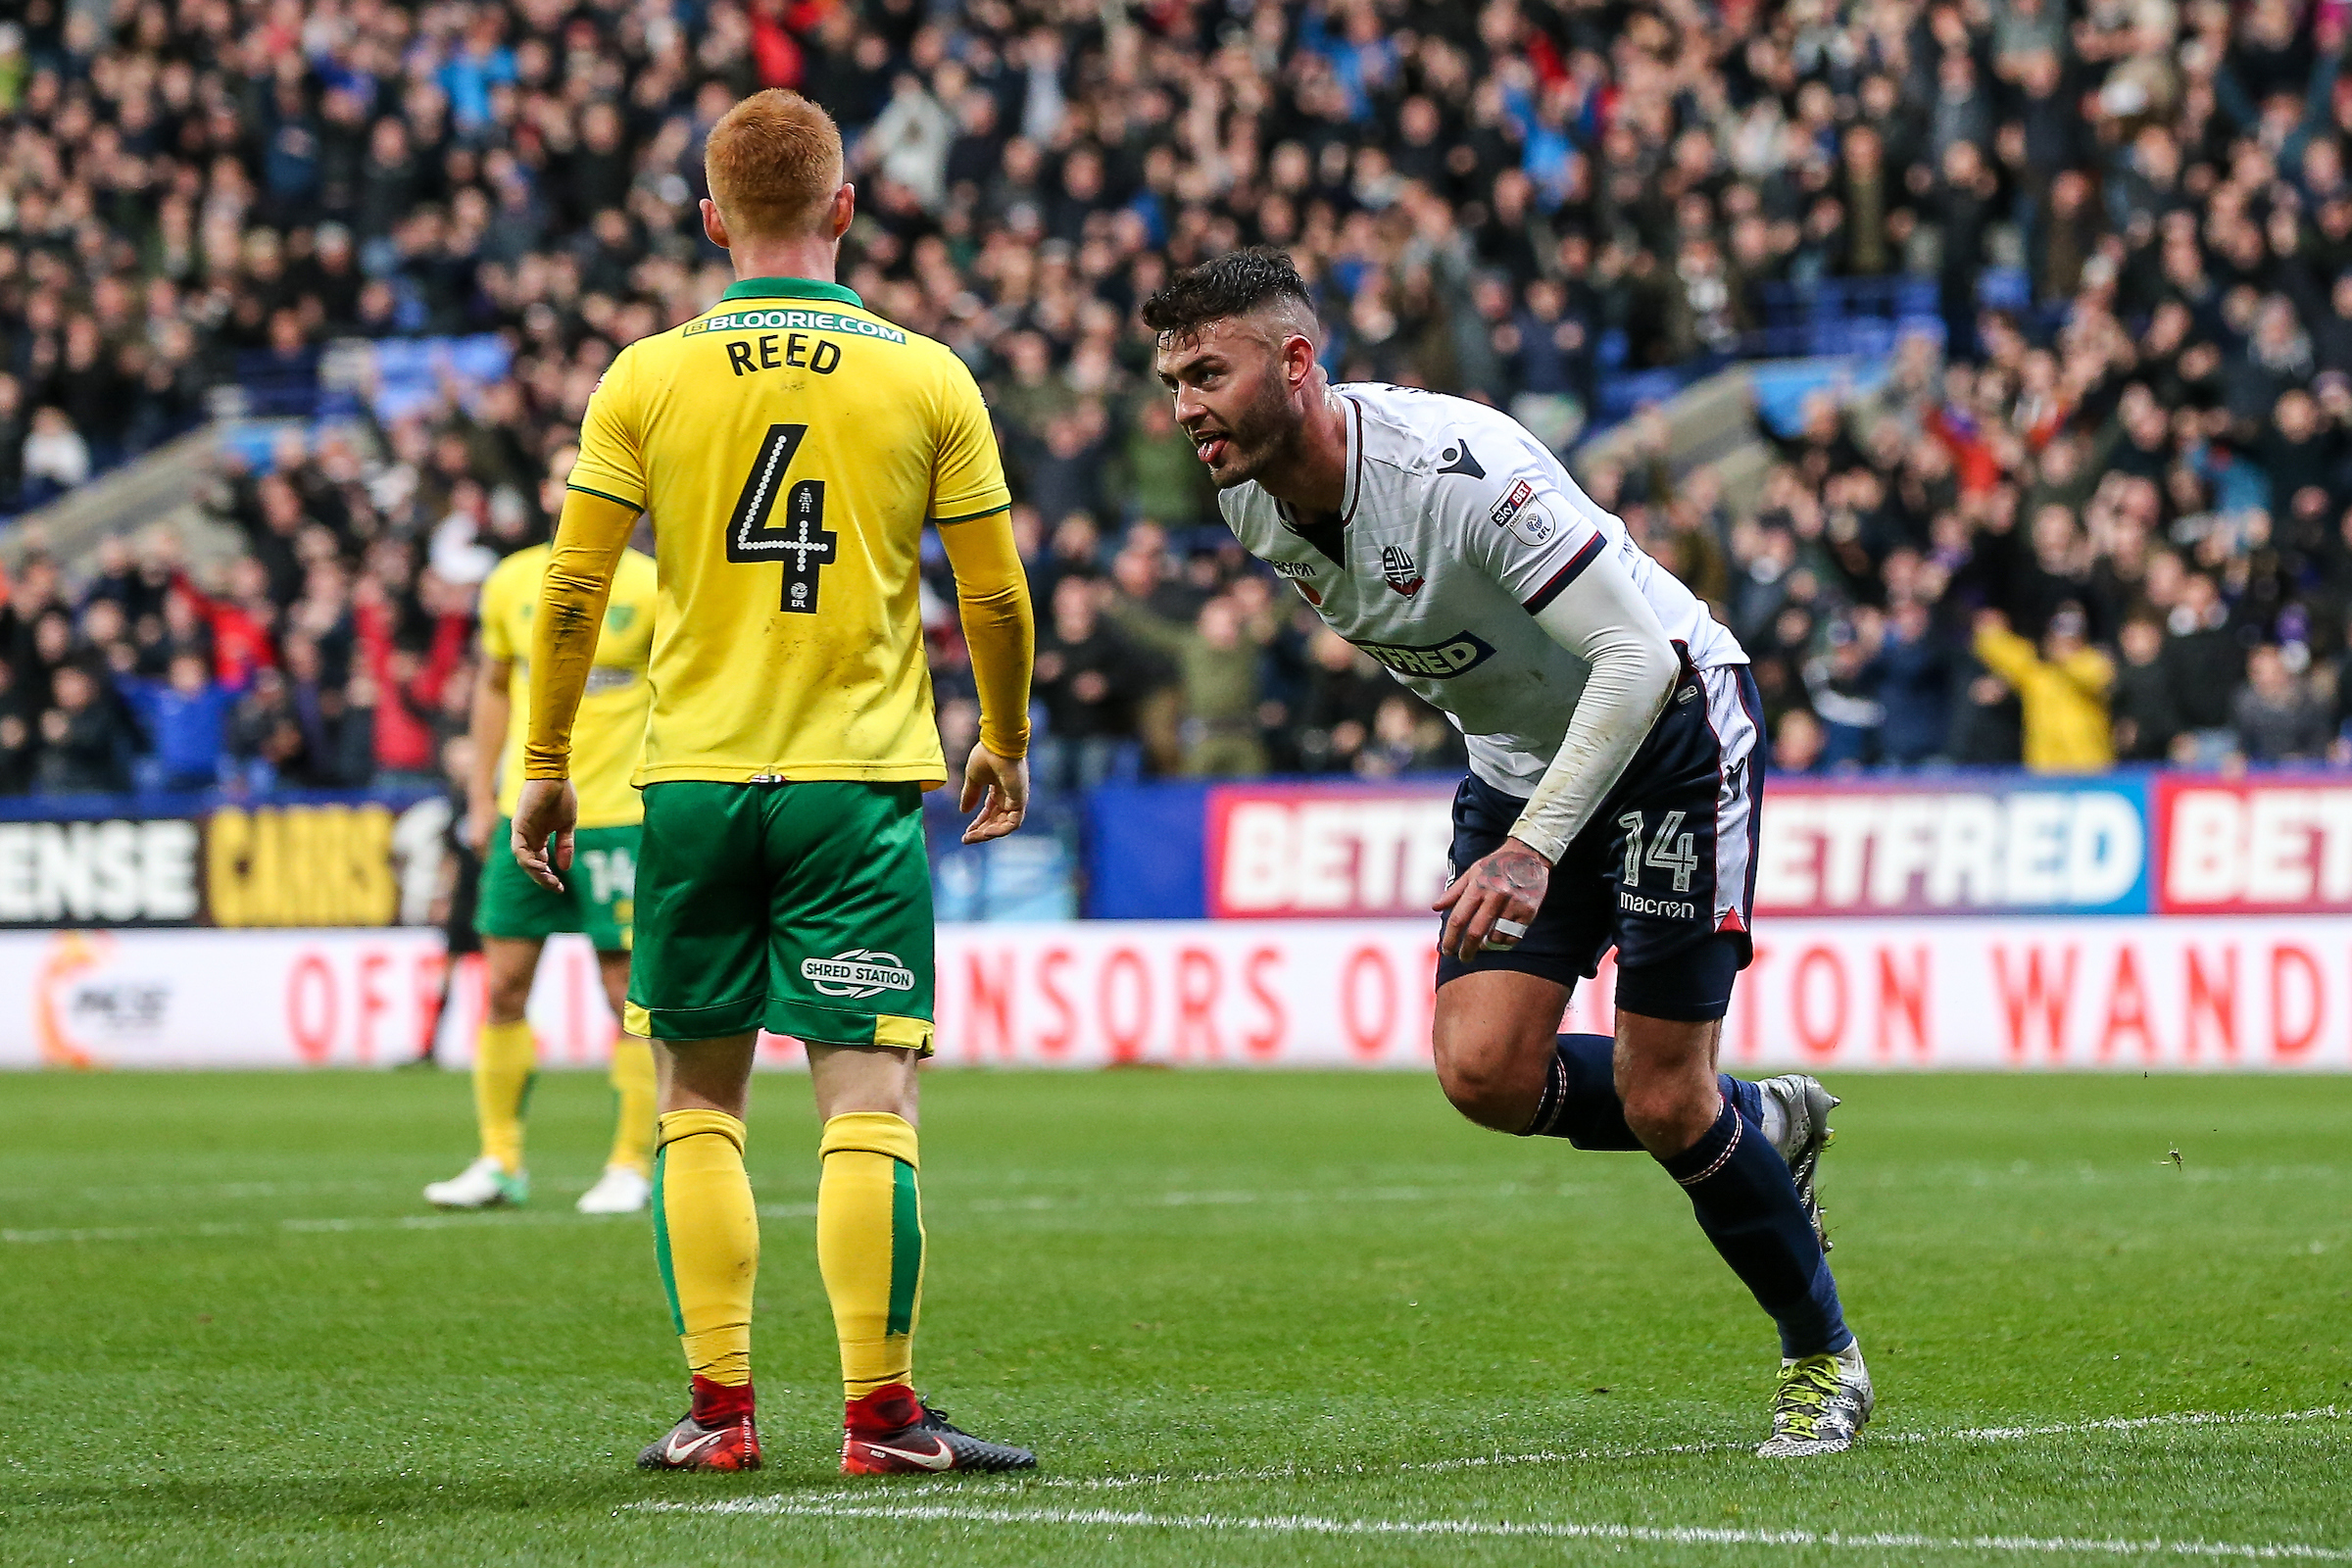 HOT POTATO: Gary Madine has scored twice and created three goals in his last two games for Wanderers